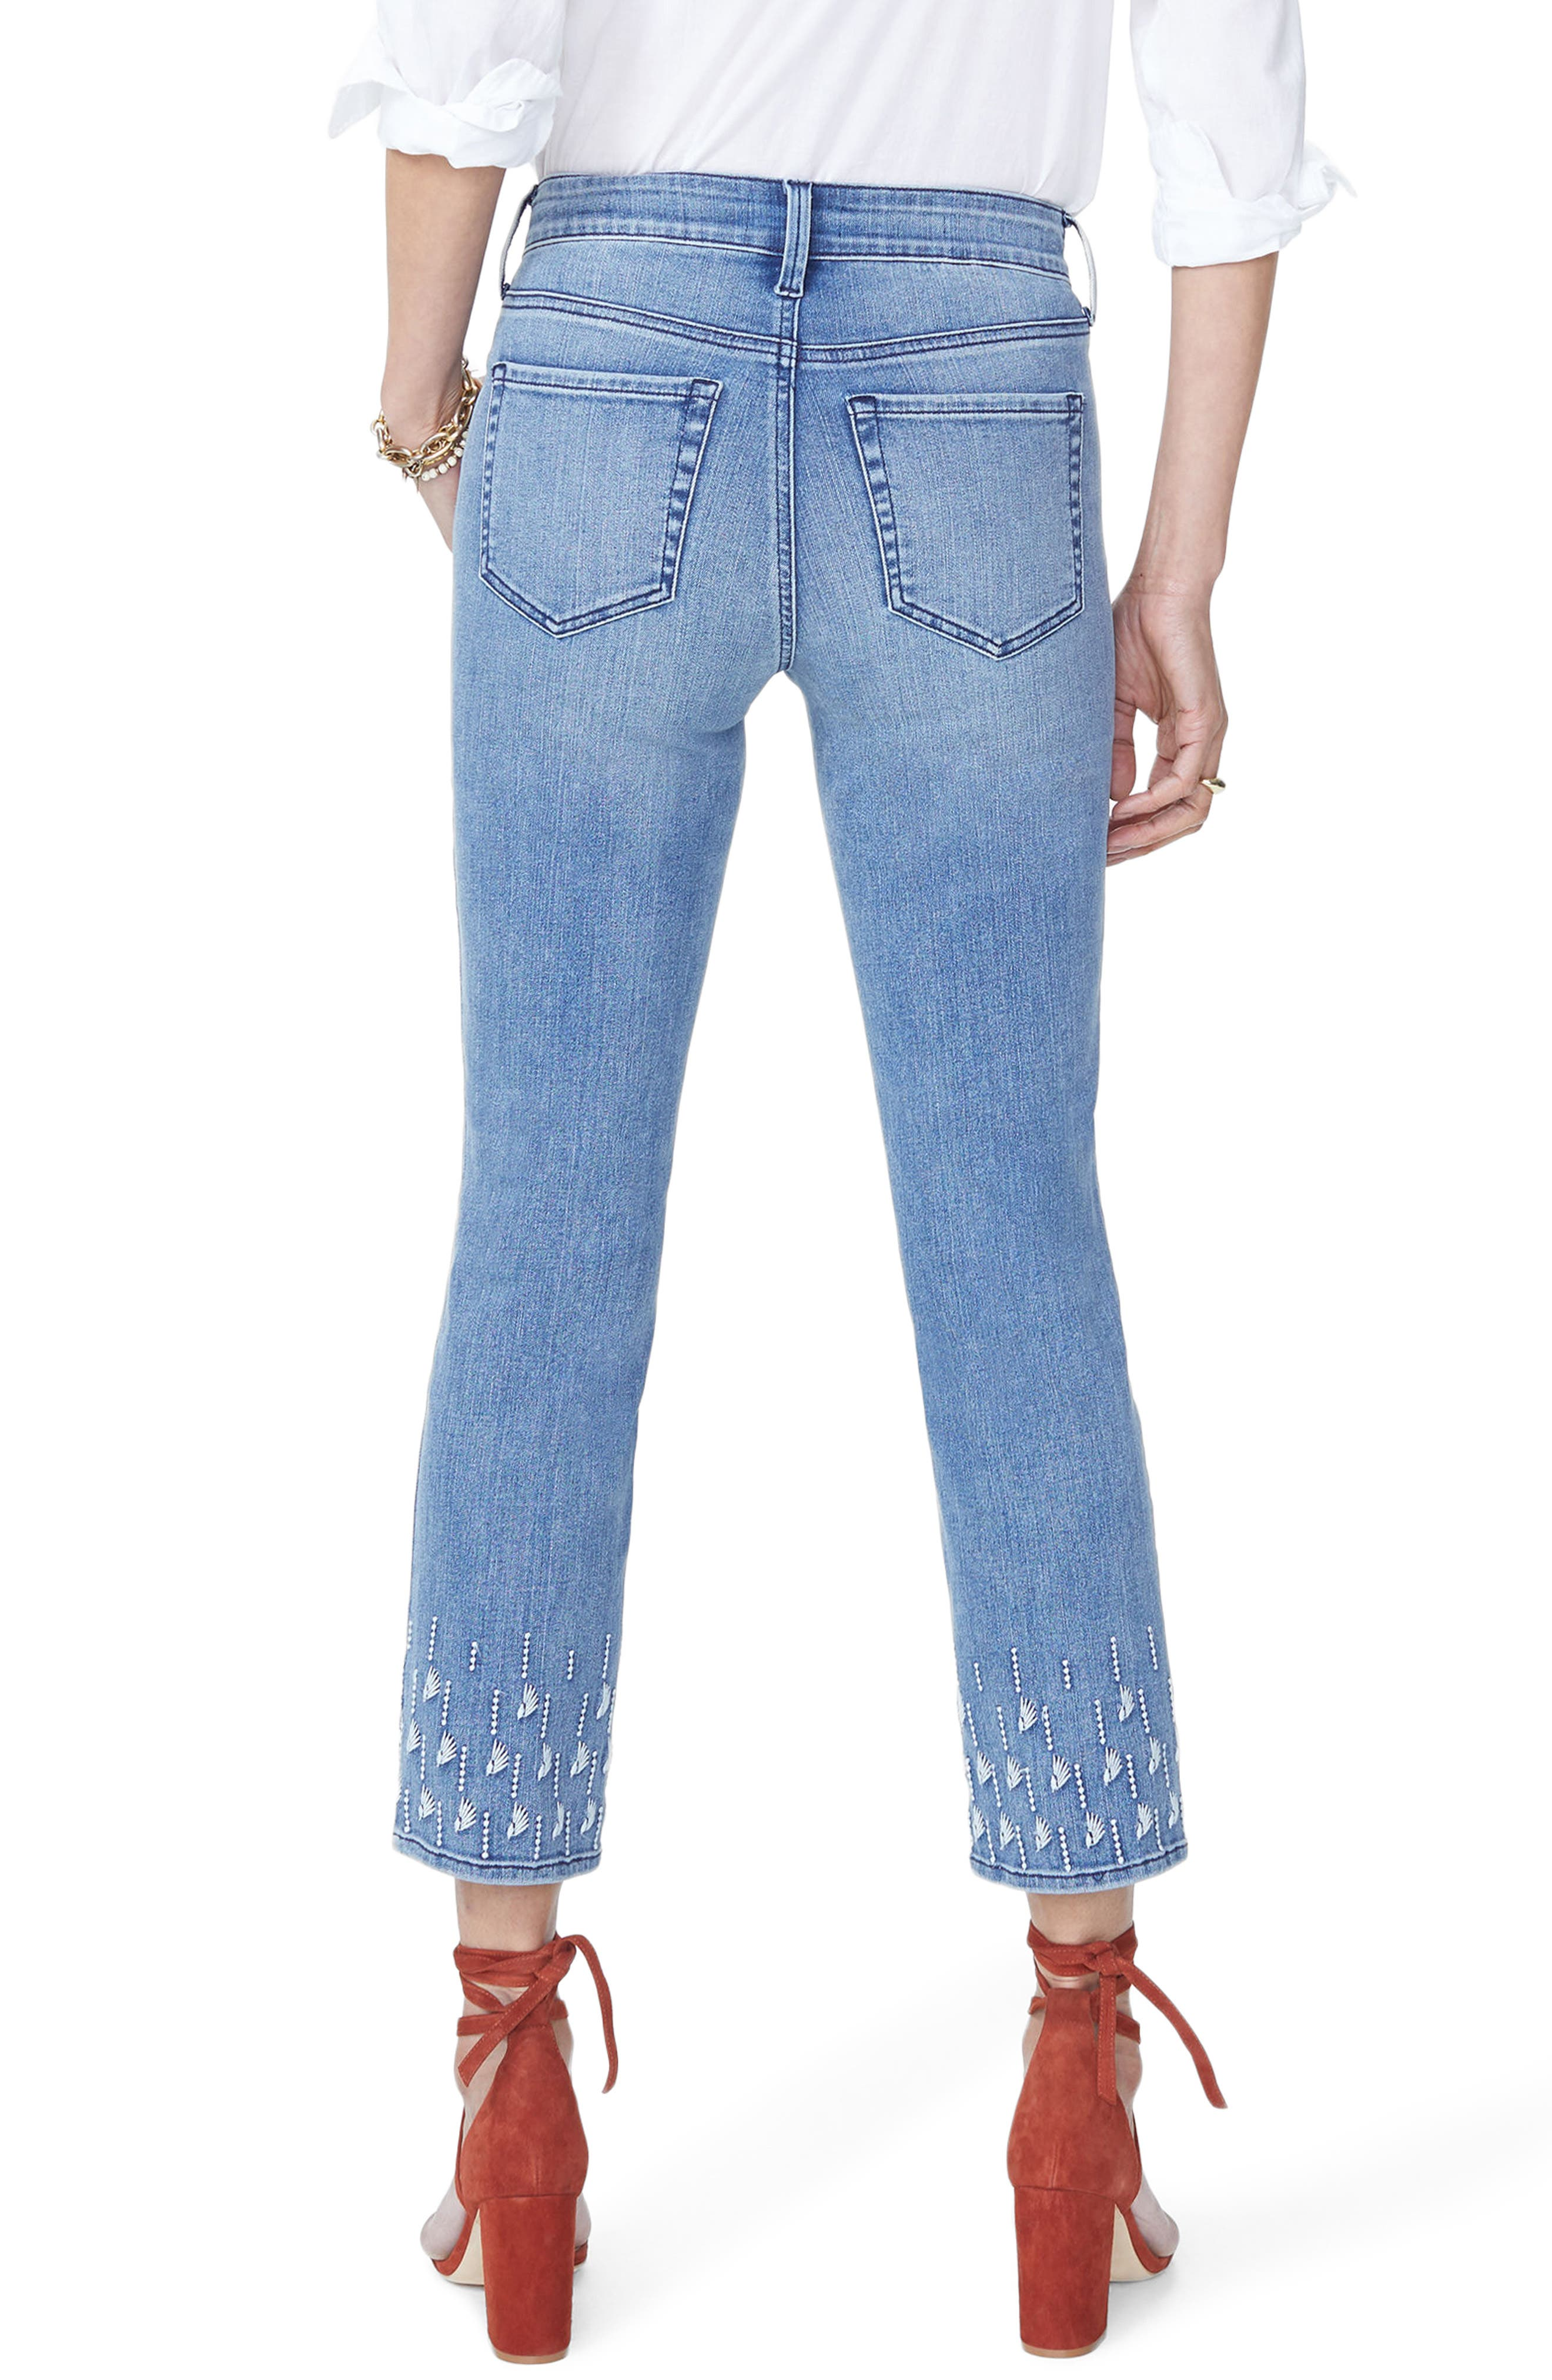 Sheri Embroidered Stretch Slim Ankle Jeans,                             Alternate thumbnail 2, color,                             POINT DUME